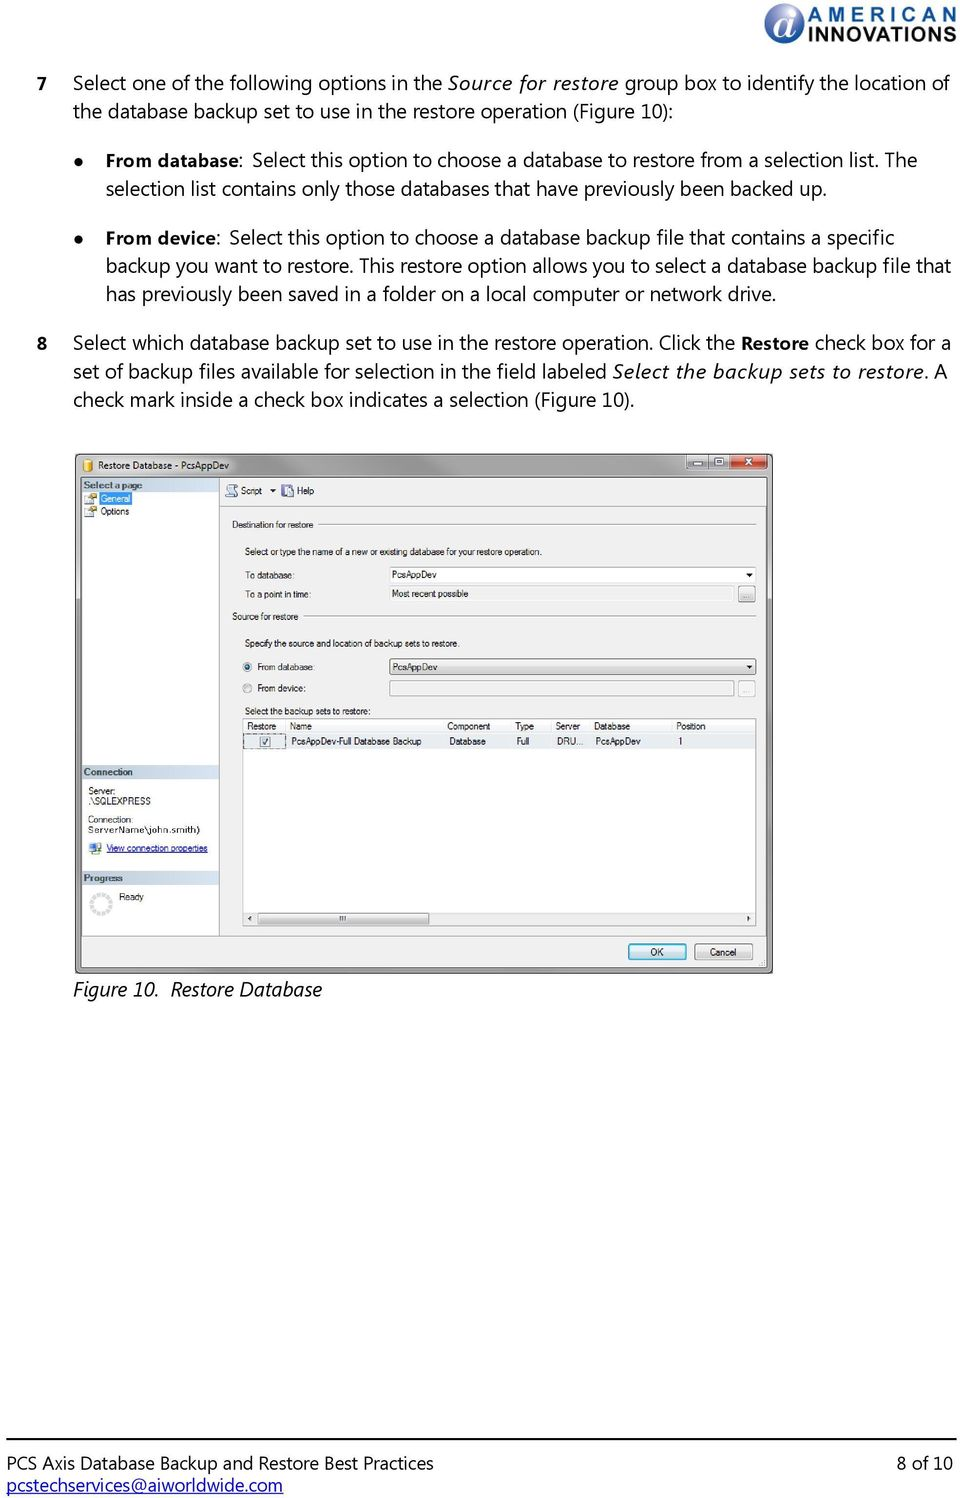 From device: Select this option to choose a database backup file that contains a specific backup you want to restore.